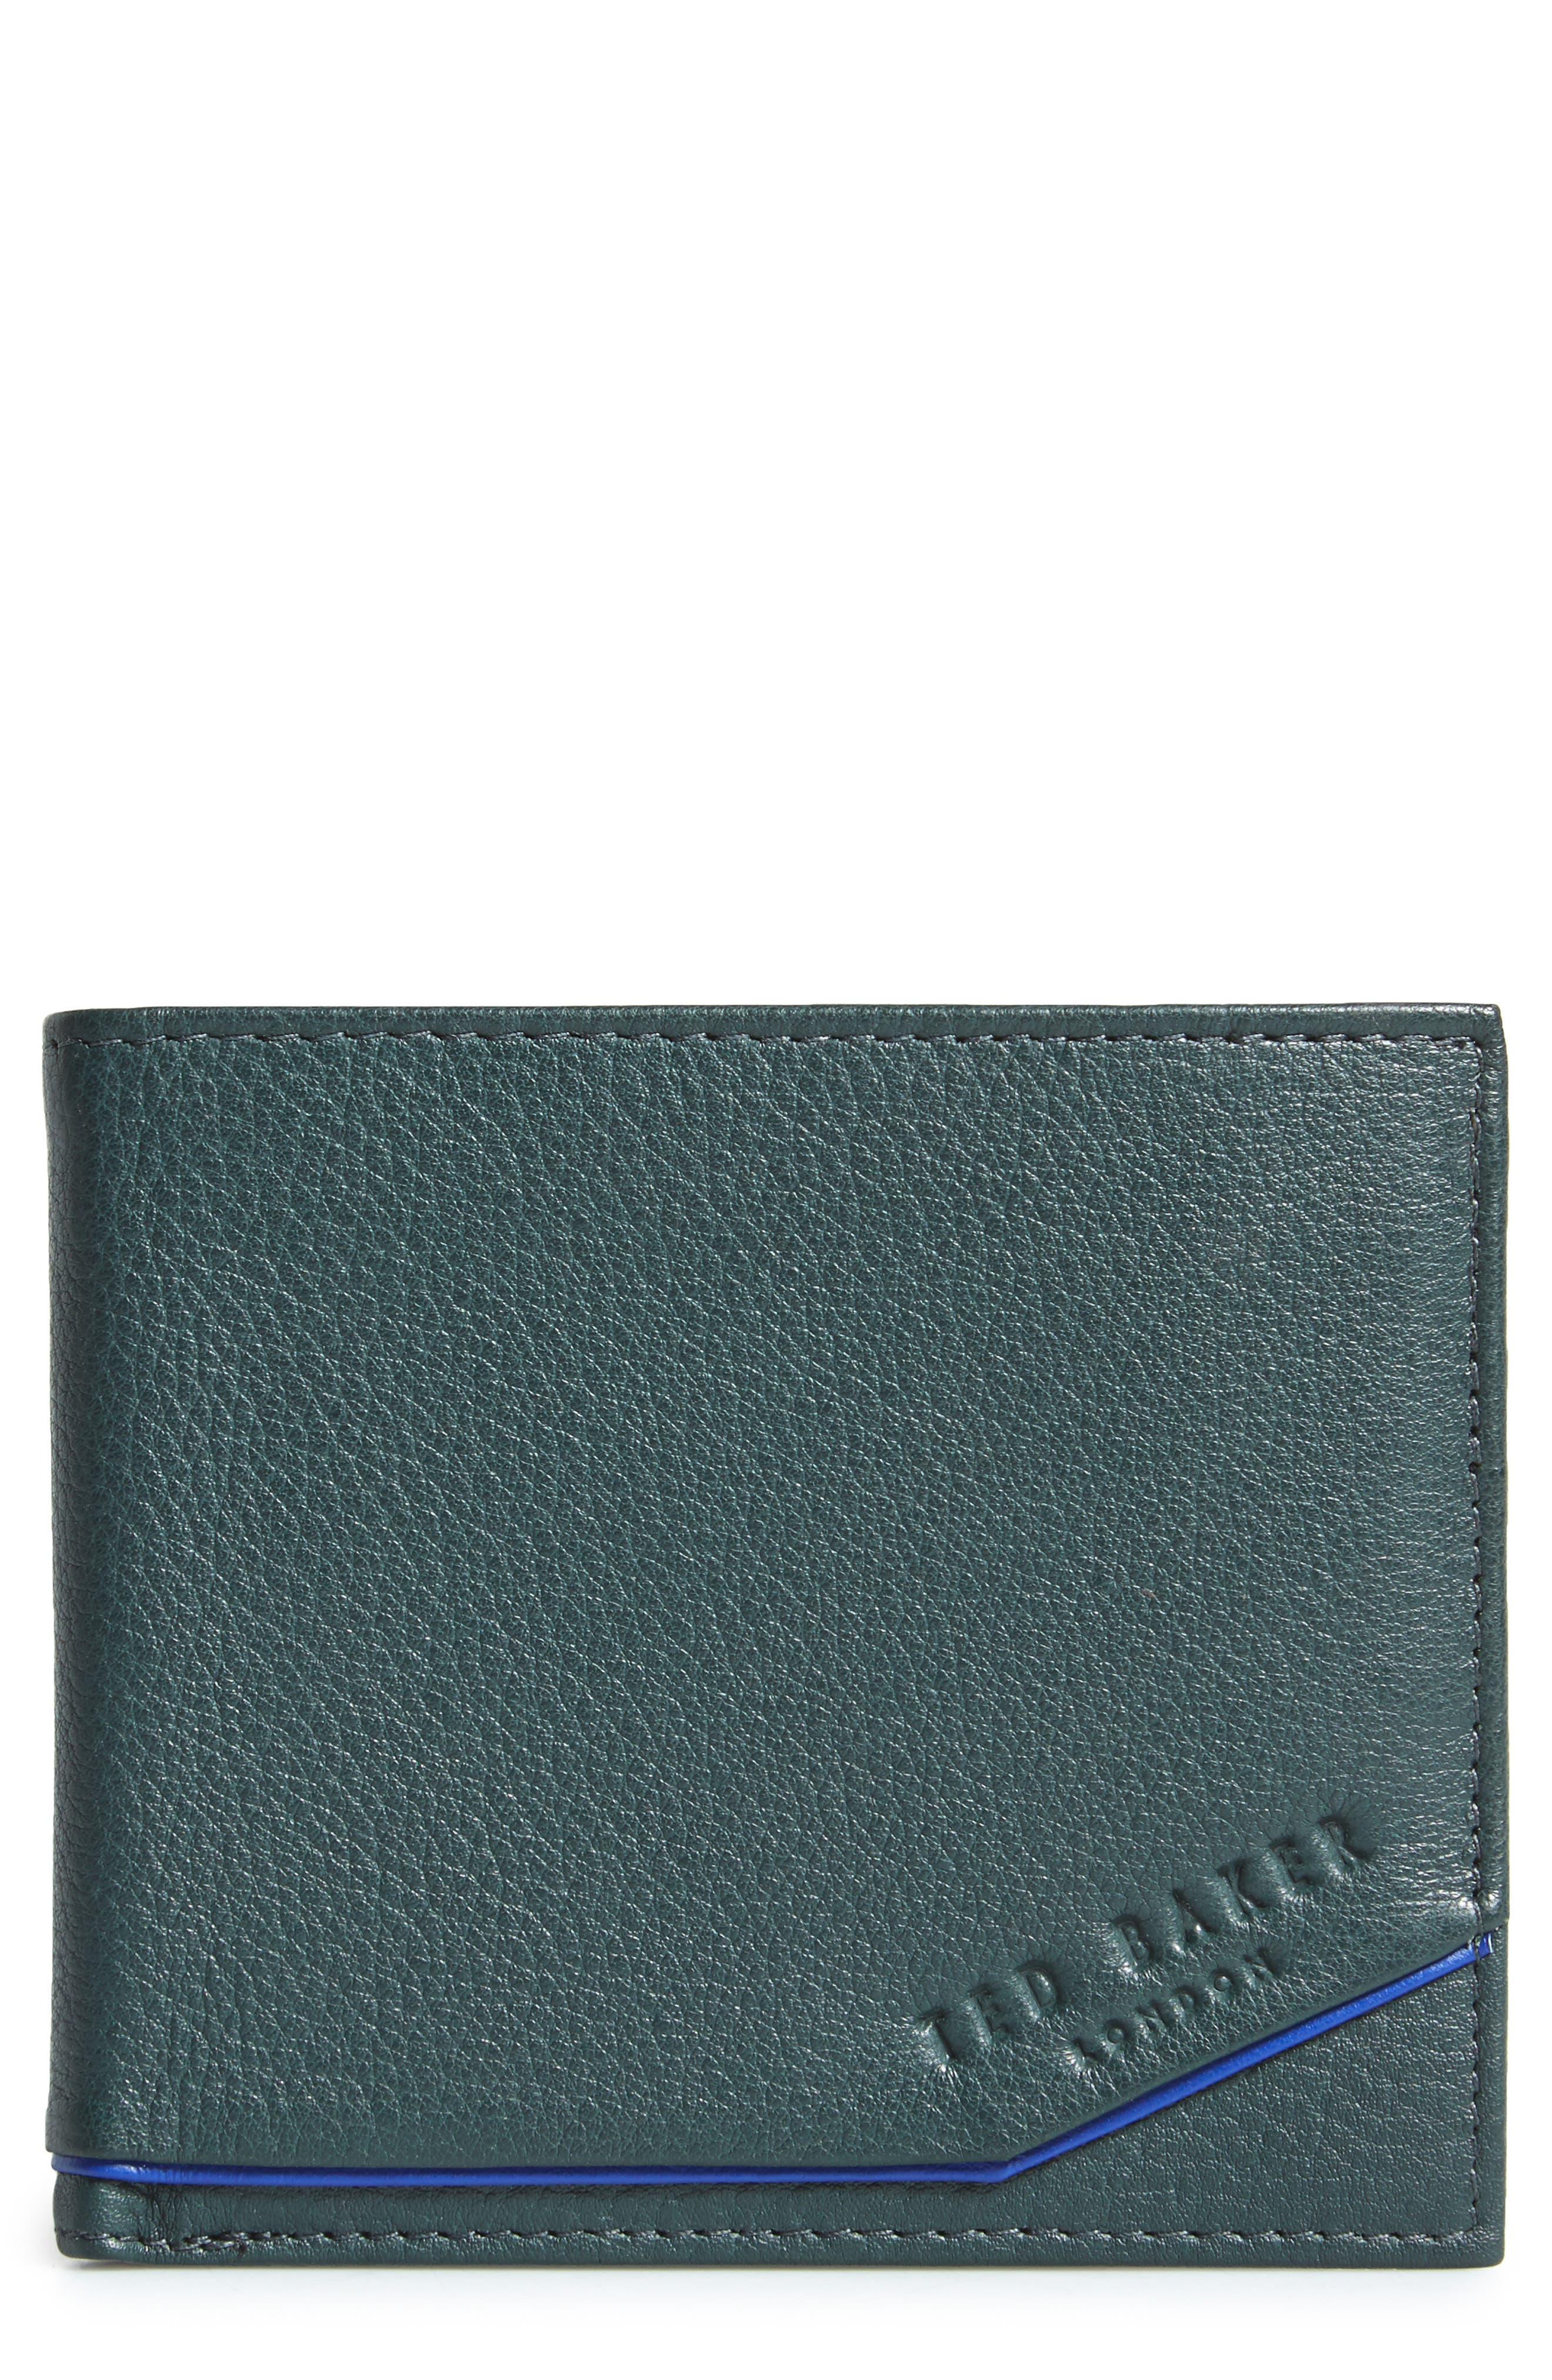 TED BAKER LONDON Persia Leather Wallet